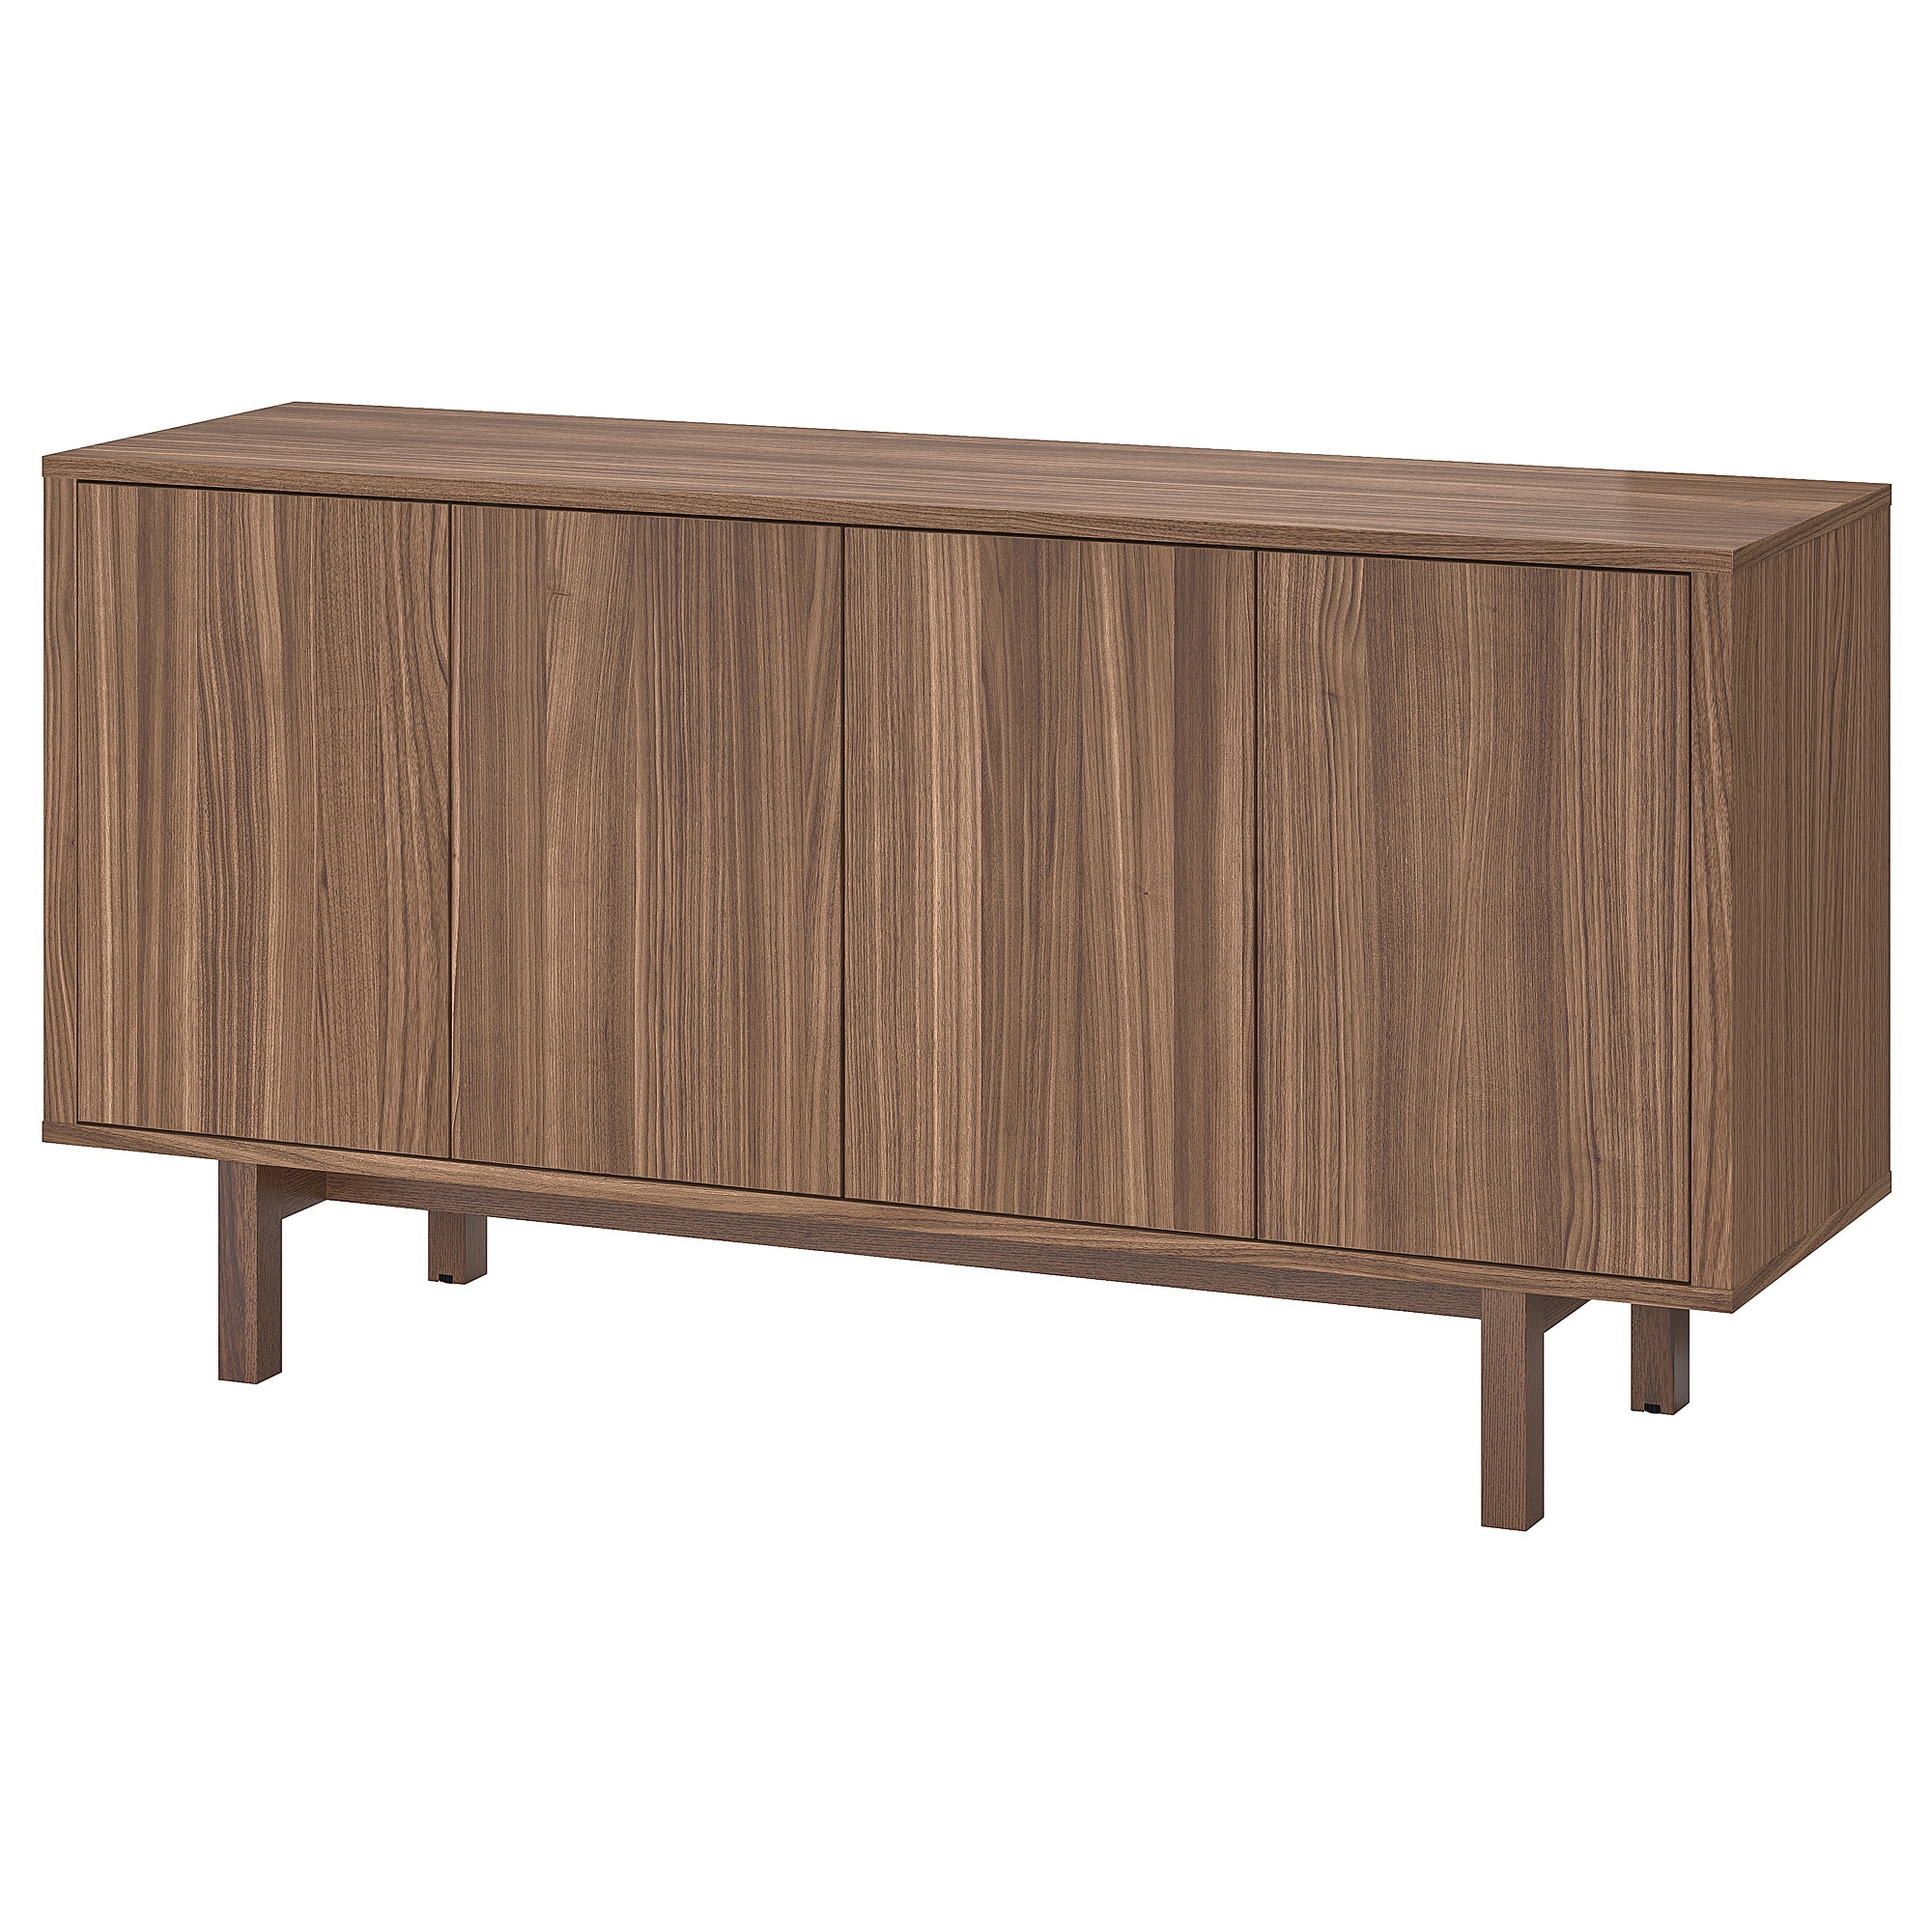 Stockholm Sideboard, Walnut Veneer inside North York Sideboards (Image 24 of 30)